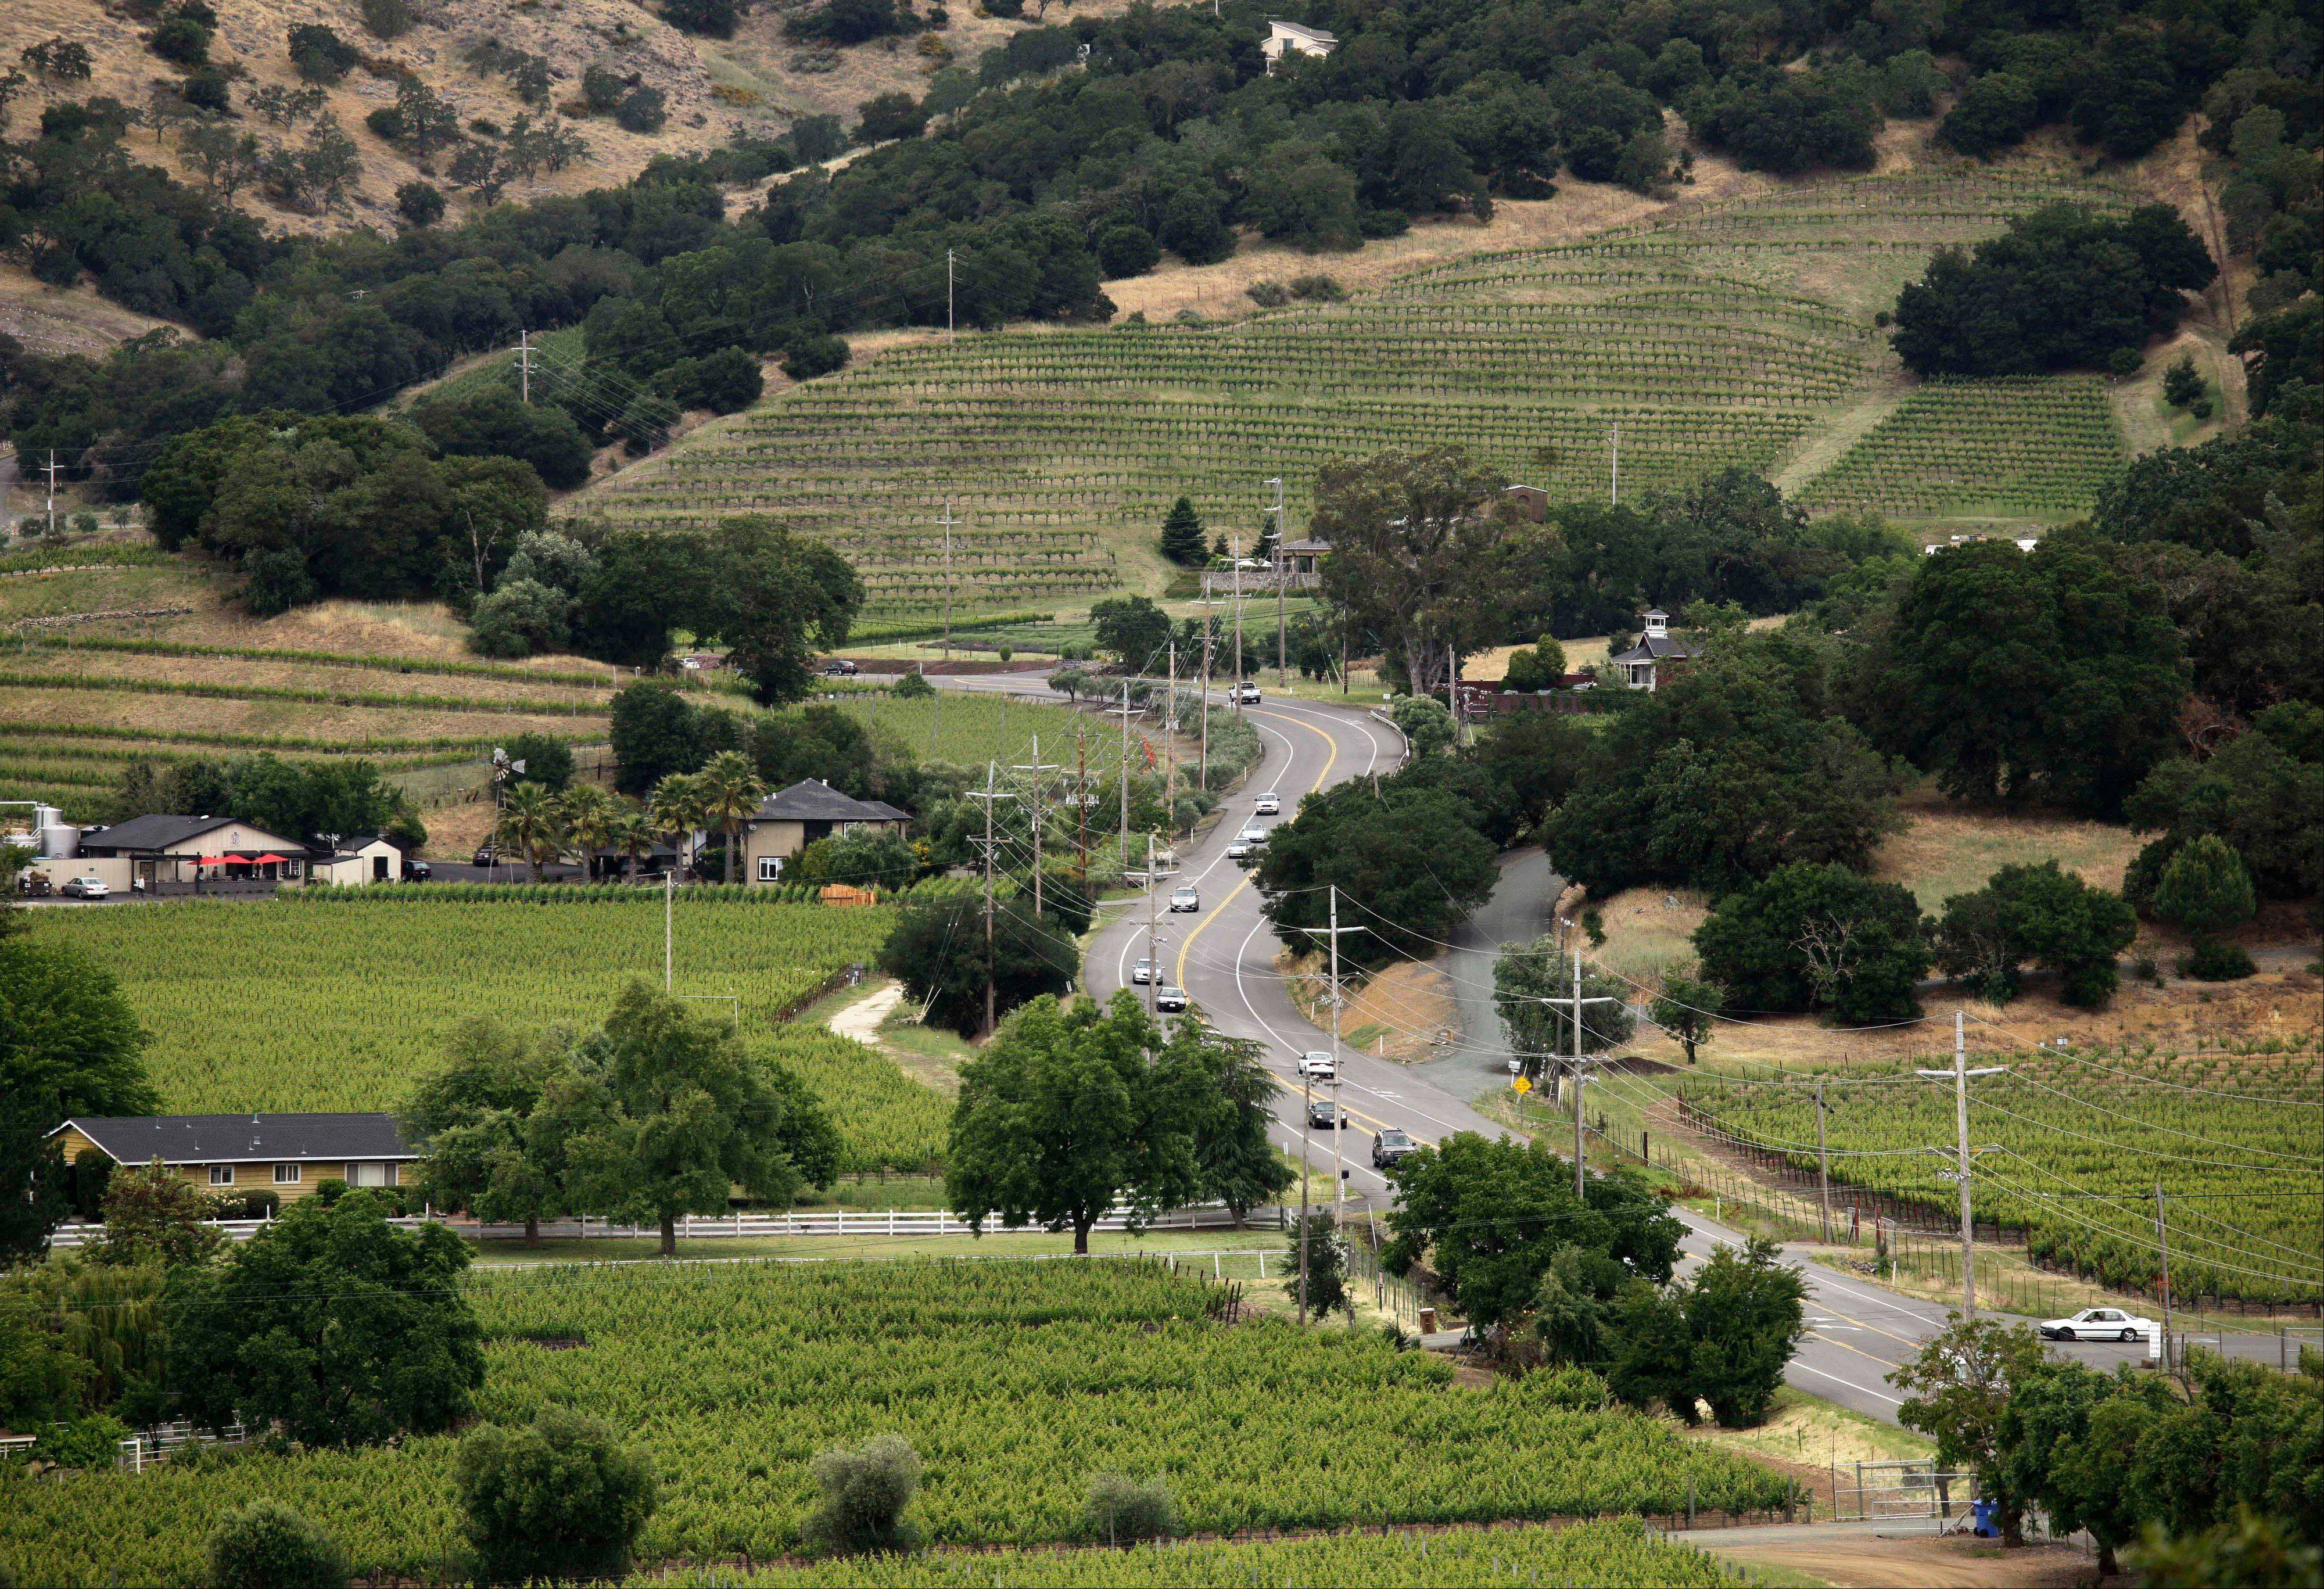 The Silverado Trail winds through the Stags Leap District from Silverado Vineyards in Napa, Calif. The trail more or less runs parallel to Highway 29, but is quieter, winding through green vistas of vineyards and rolling hills.